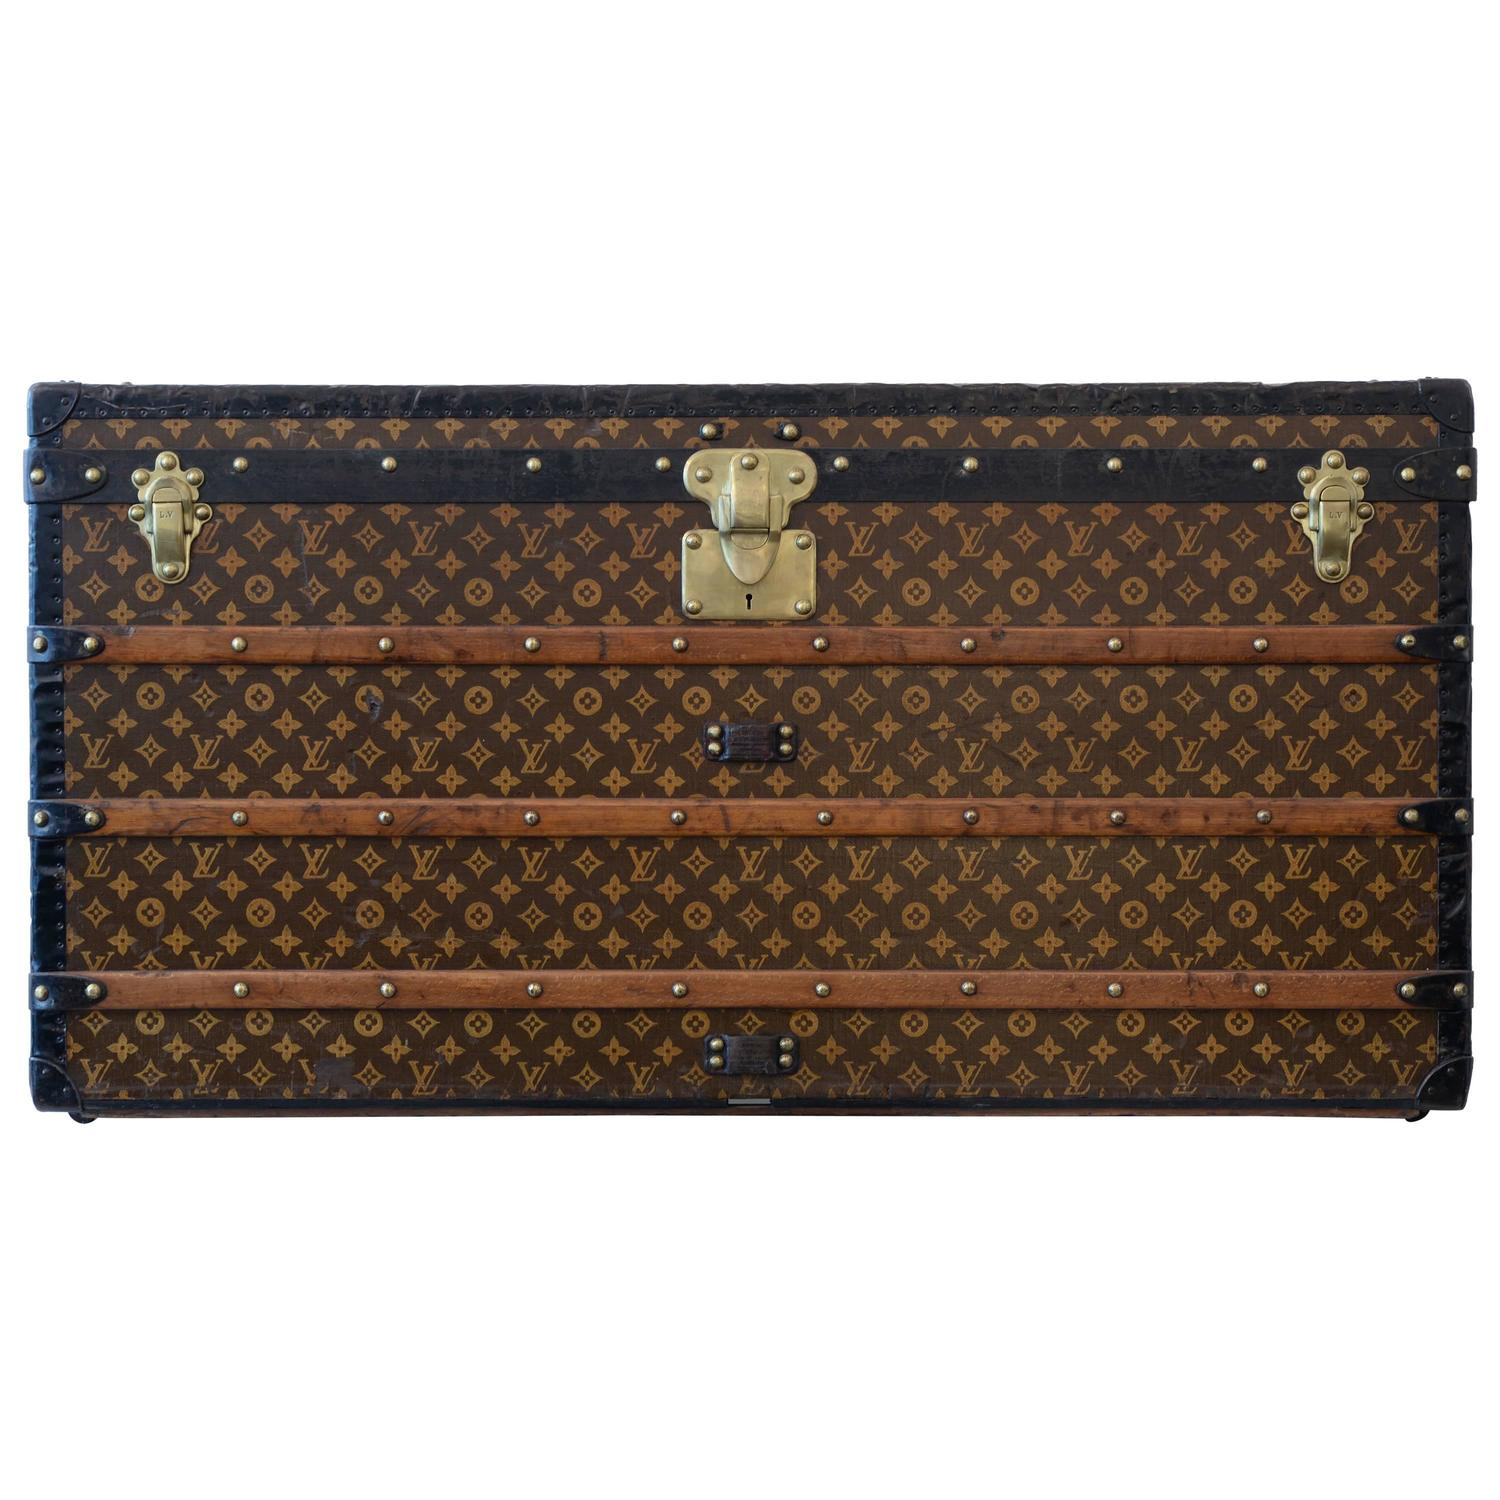 Louis Vuitton Malle Courrier At 1stdibs